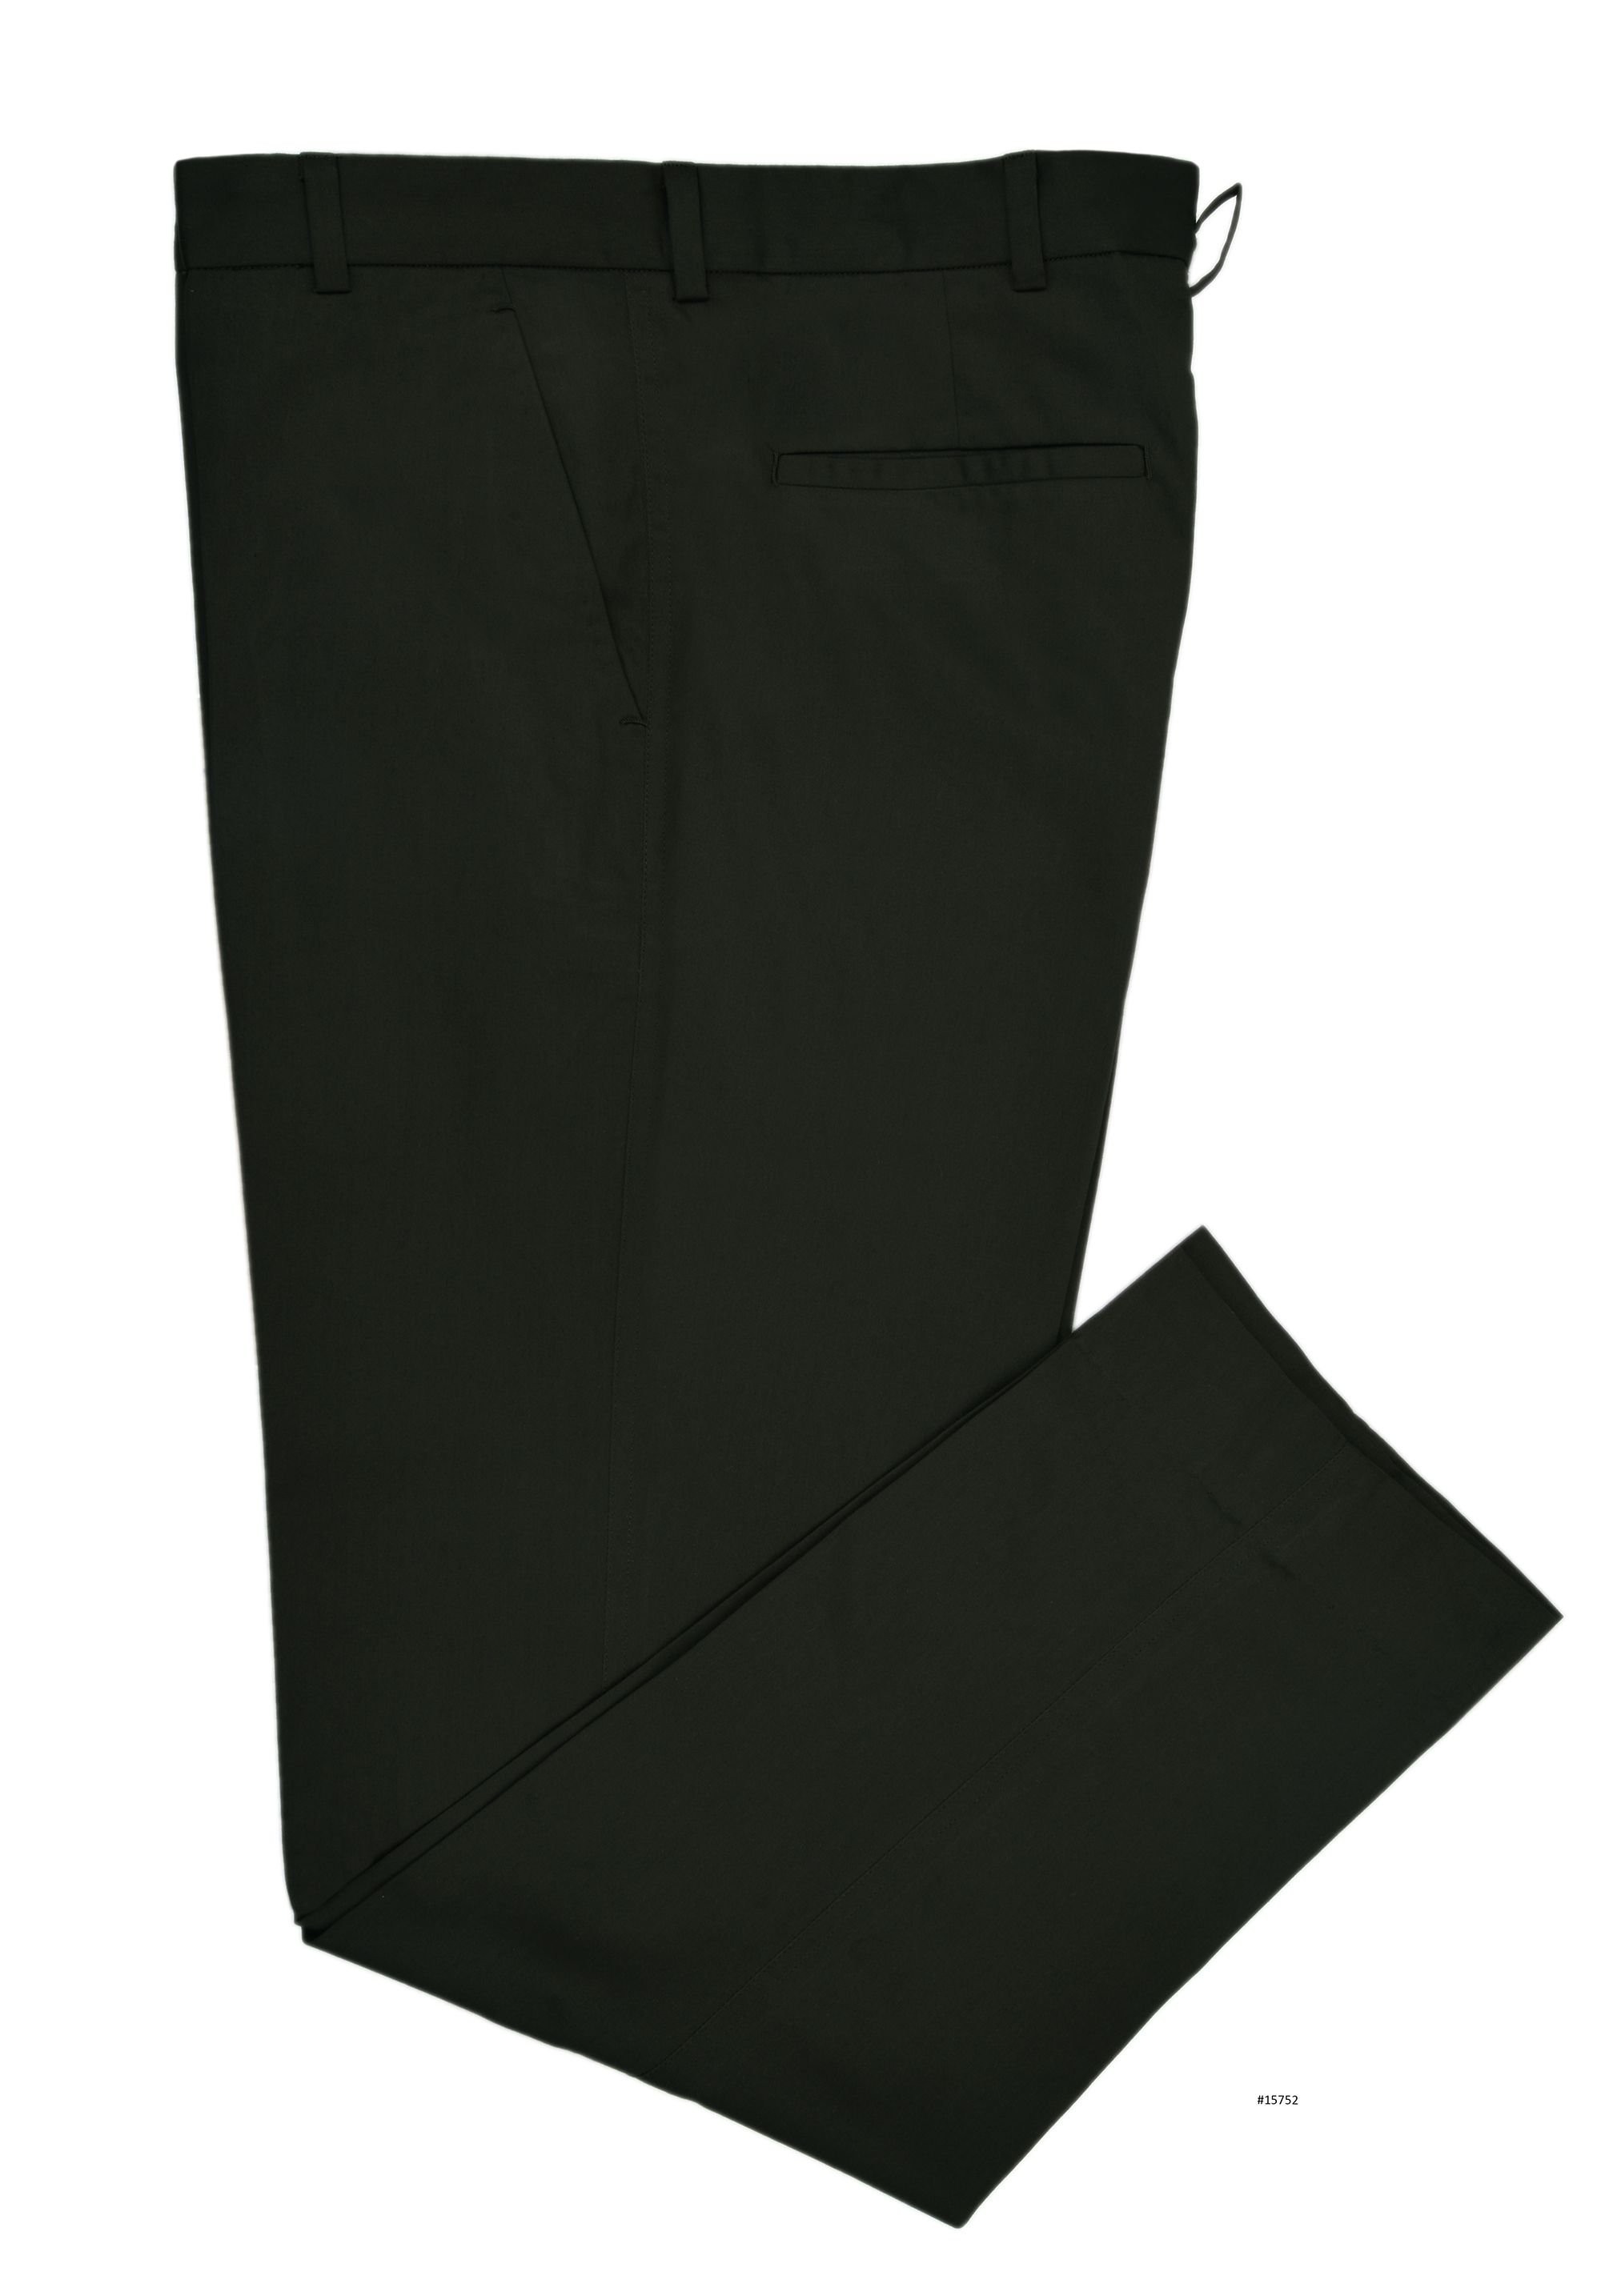 Luxire pants constructed in Graphite Green Soft Cotton: http://custom.luxire.com/products/graphile_green_soft_cotton_chinos  Consists of standard extended closure with front slant pockets and 2 rear pockets.